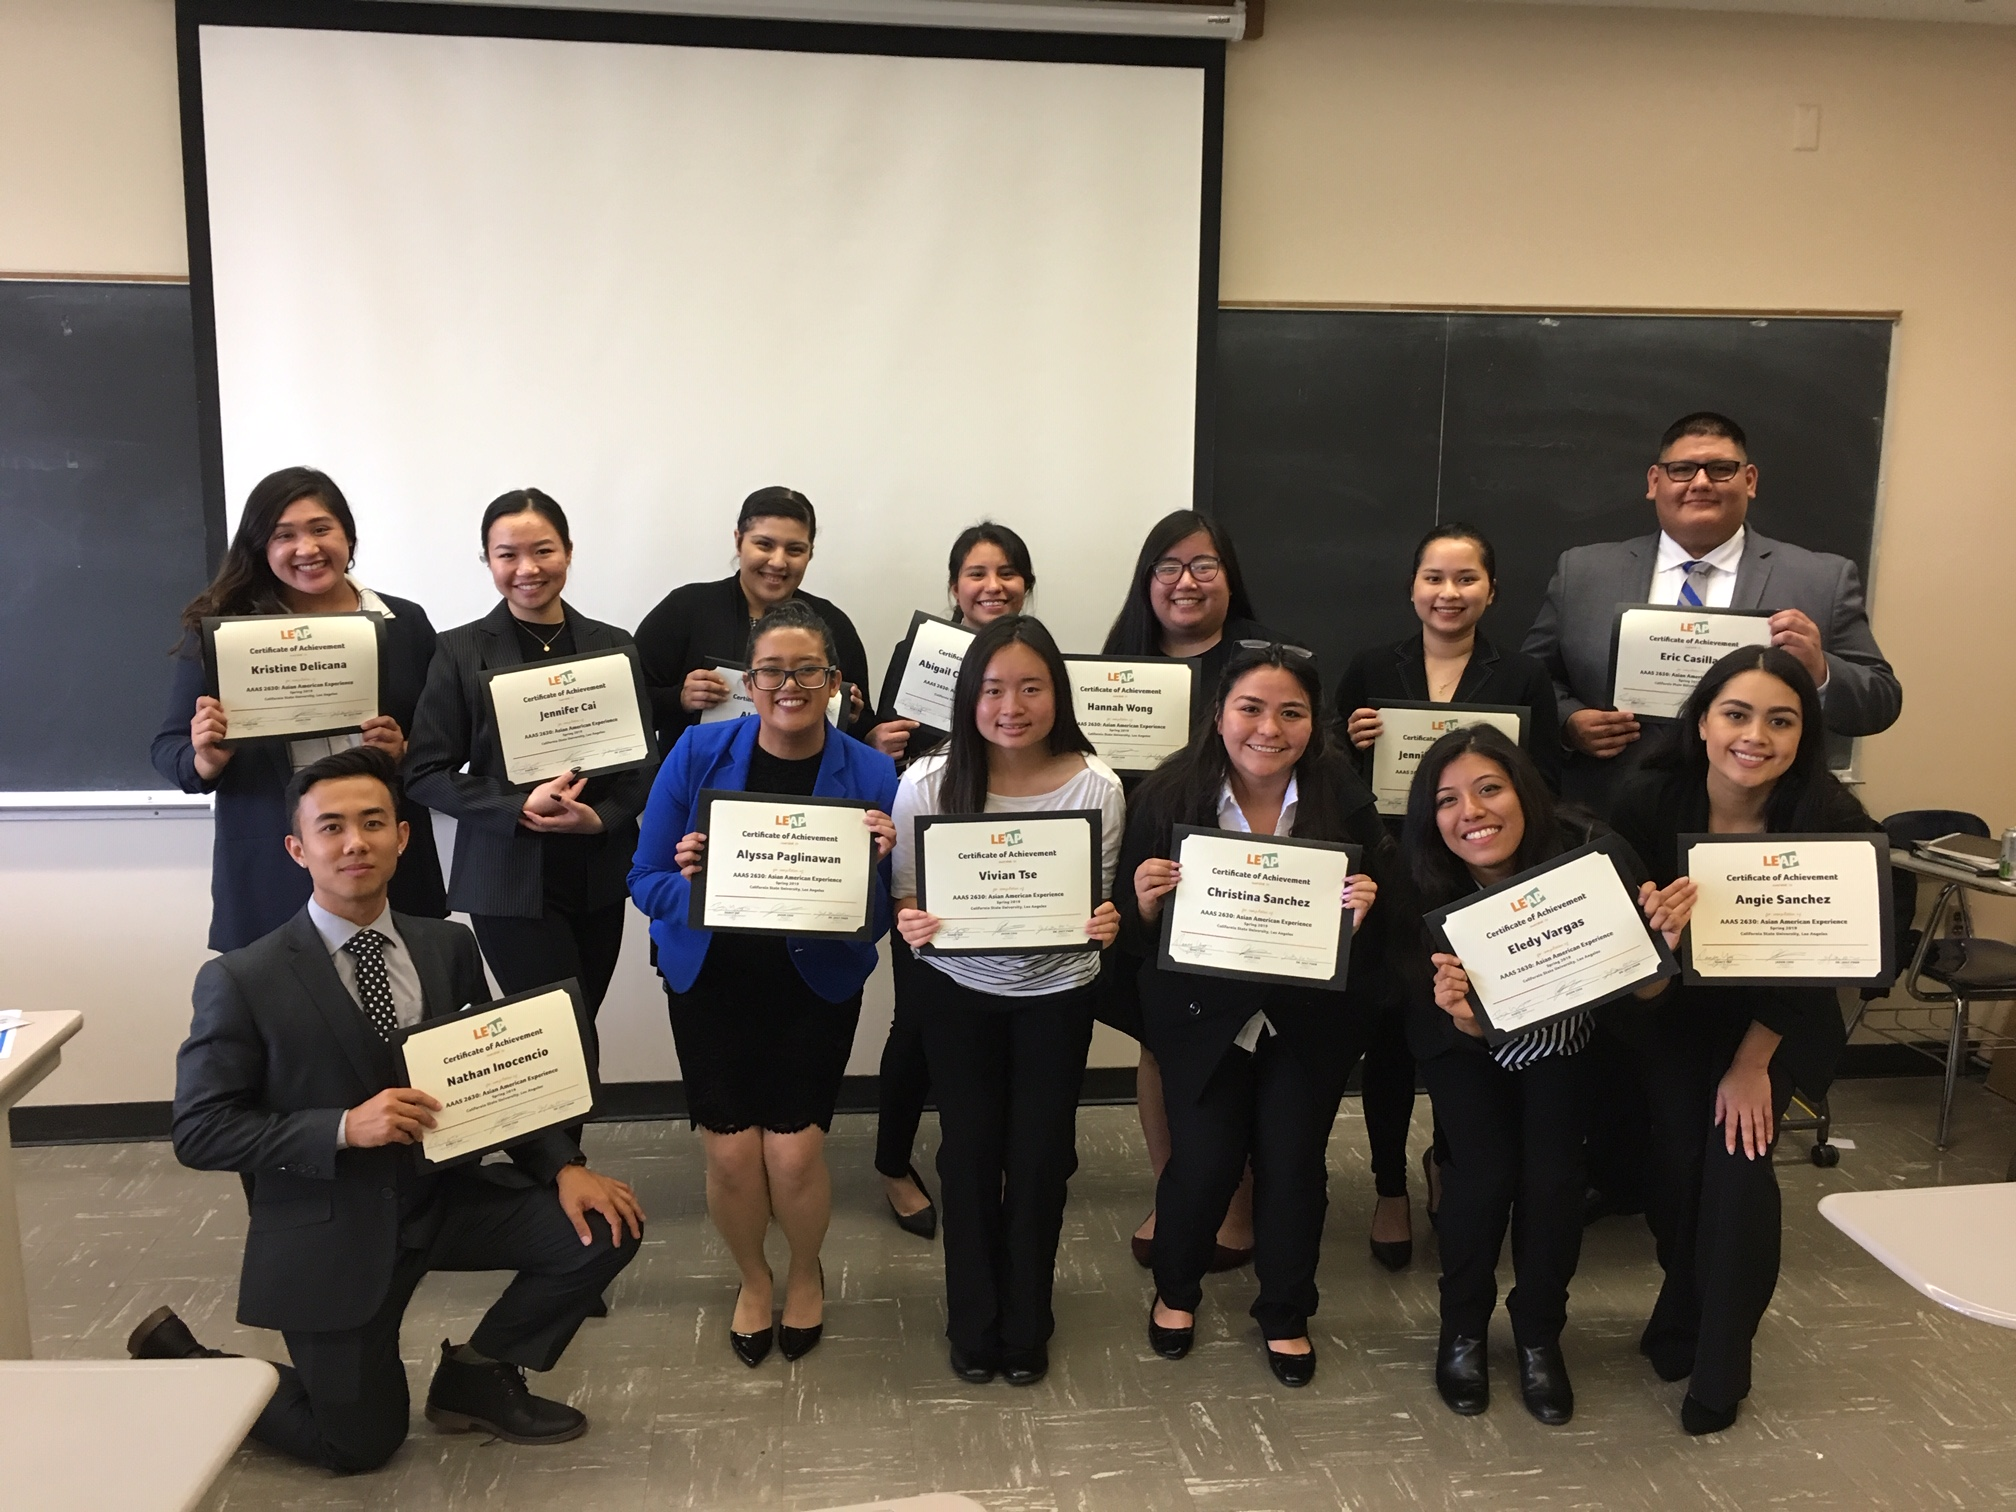 Top right to left: Kristine Delicana, Jennifer Cai, Alyssa Mejia, Abigail Calderon Garcia, Hannah Wong, Jennifer Srichandr, Eric Casilla  Bottom right to left: Nathan Inocencio, Alyssa Paglinawan, Vivian Tse, Christina Sanchez, Eledy Vargas, Angie Sanchez